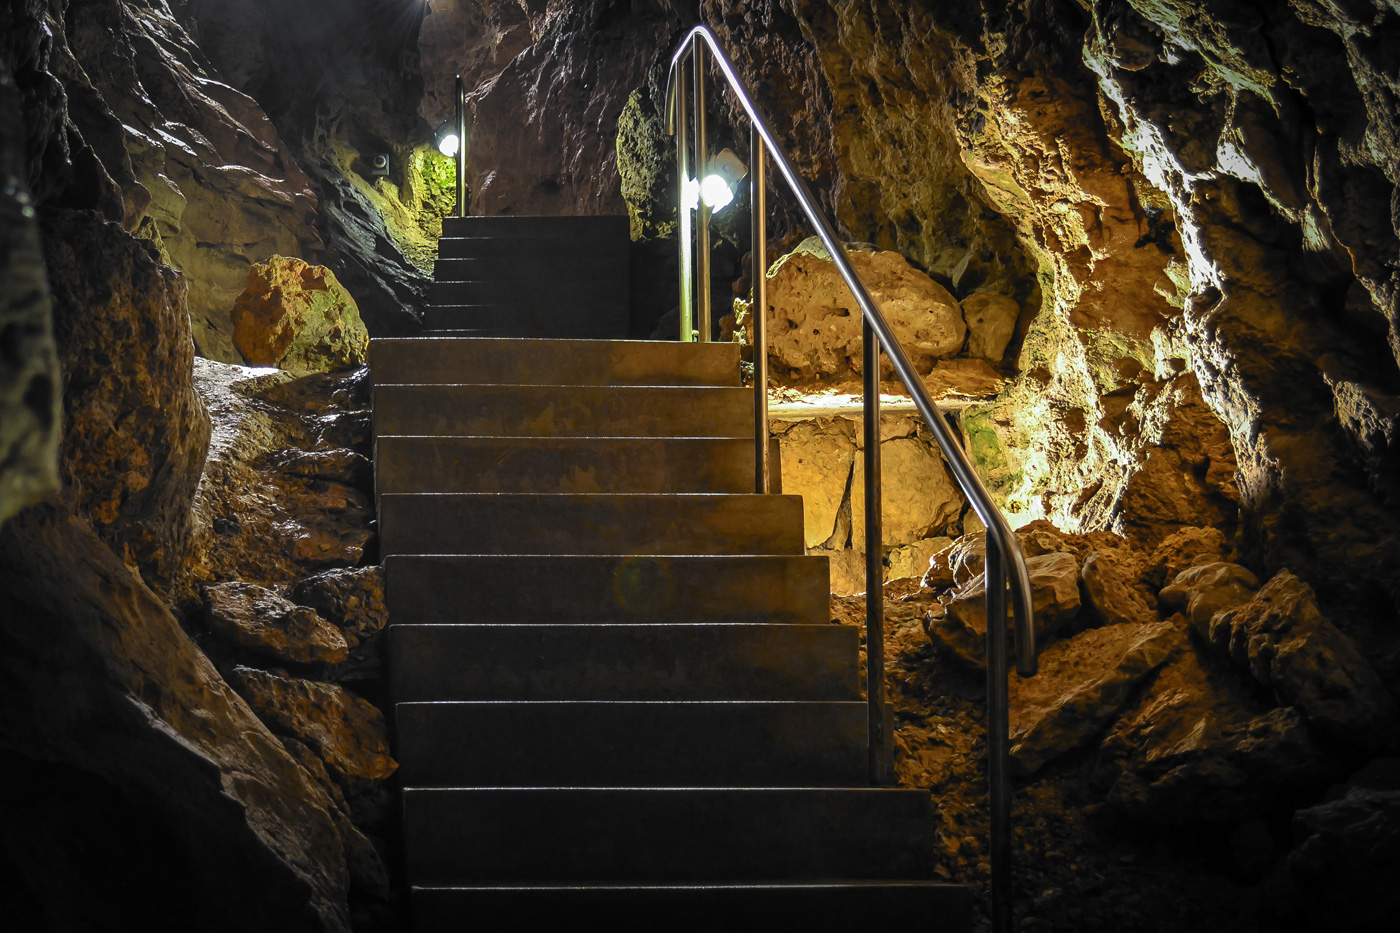 Cave stairs